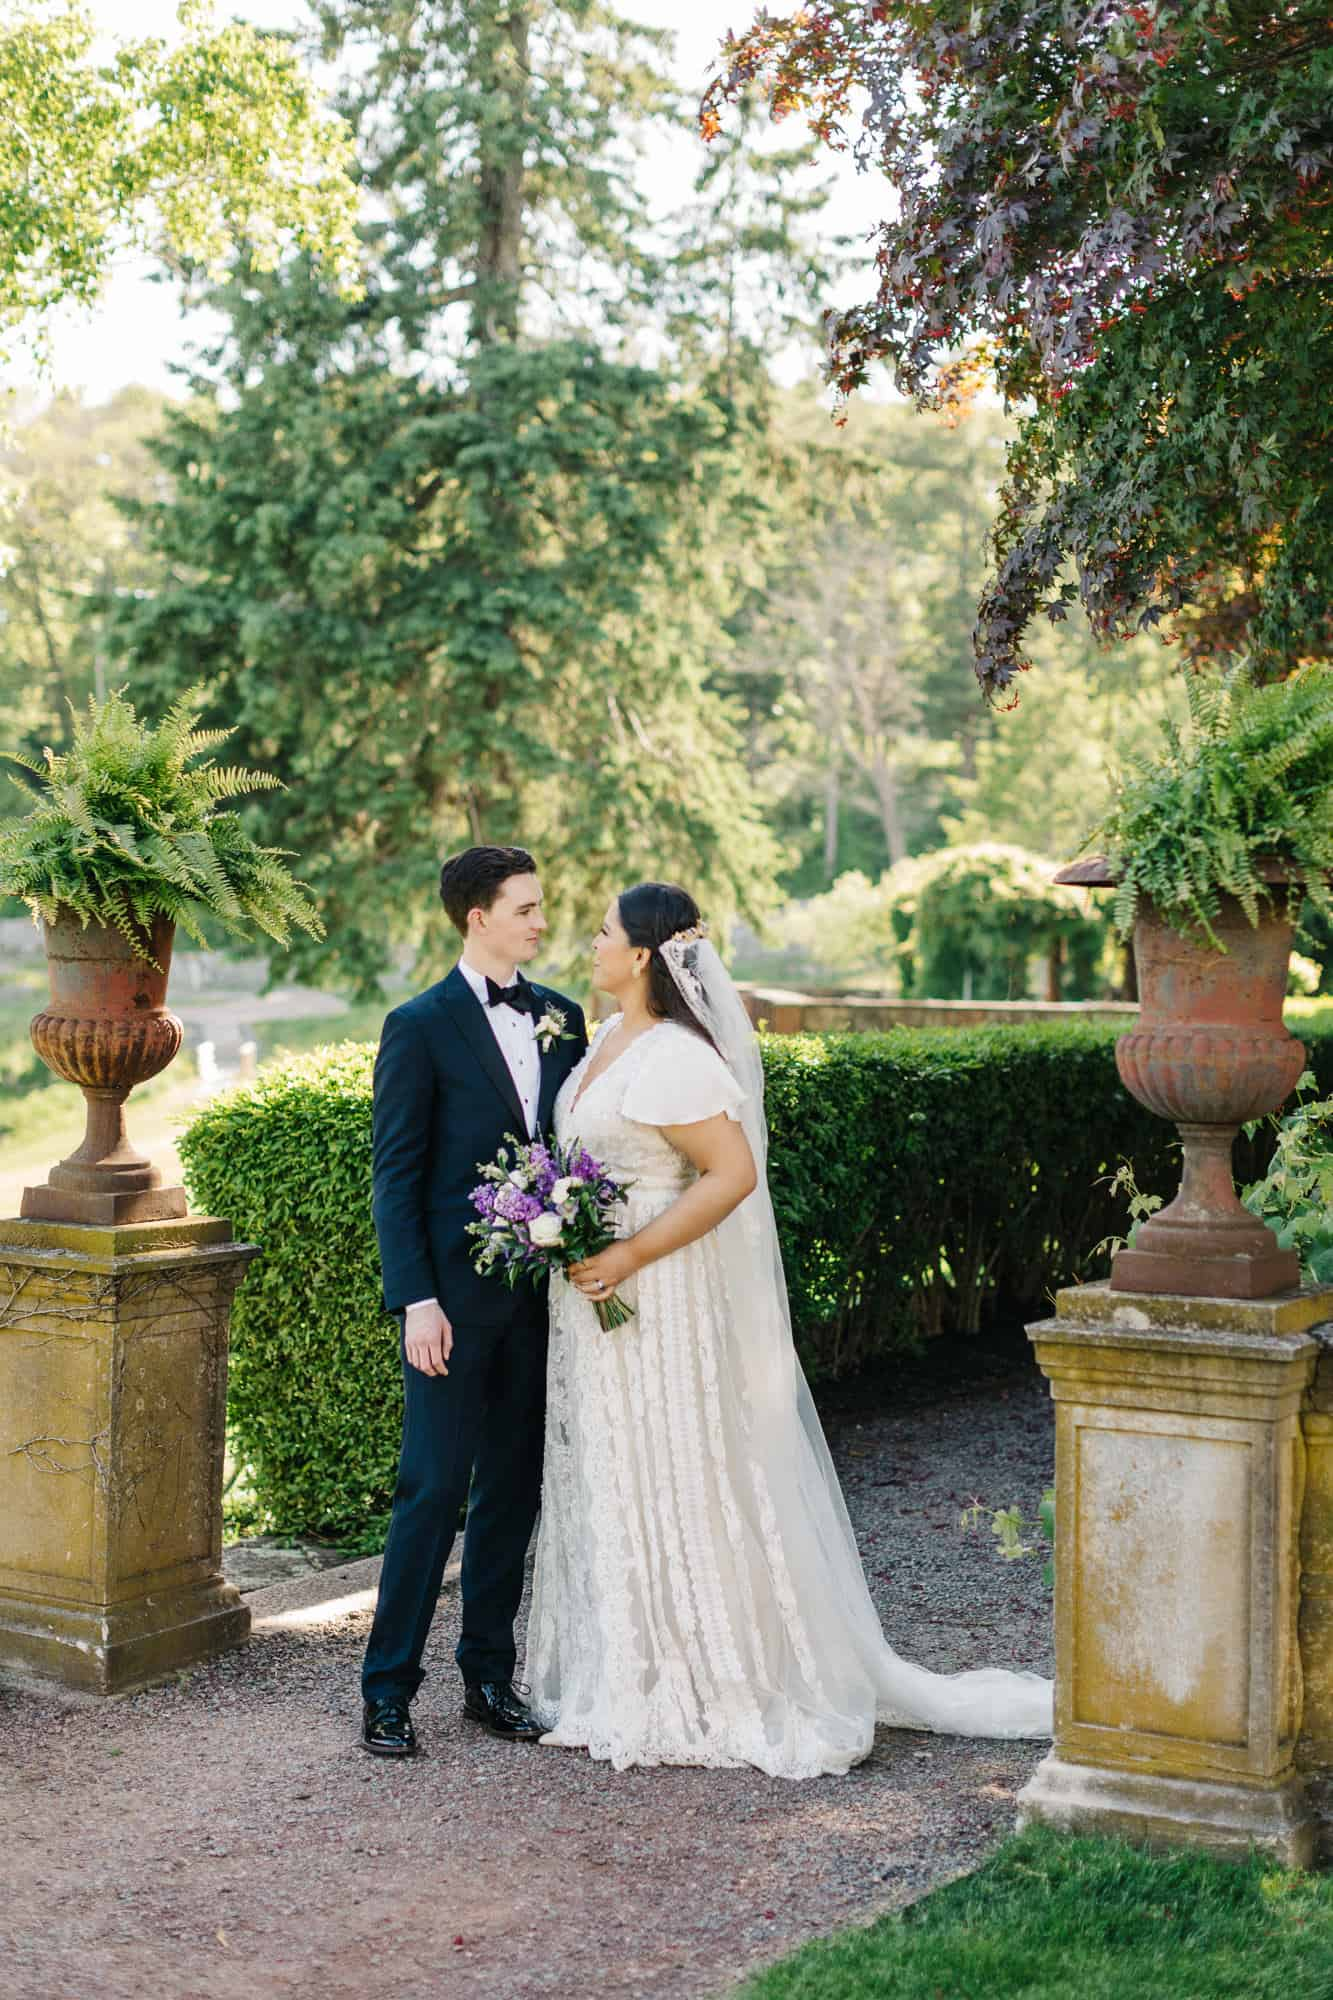 Turner Hill Mansion Wedding